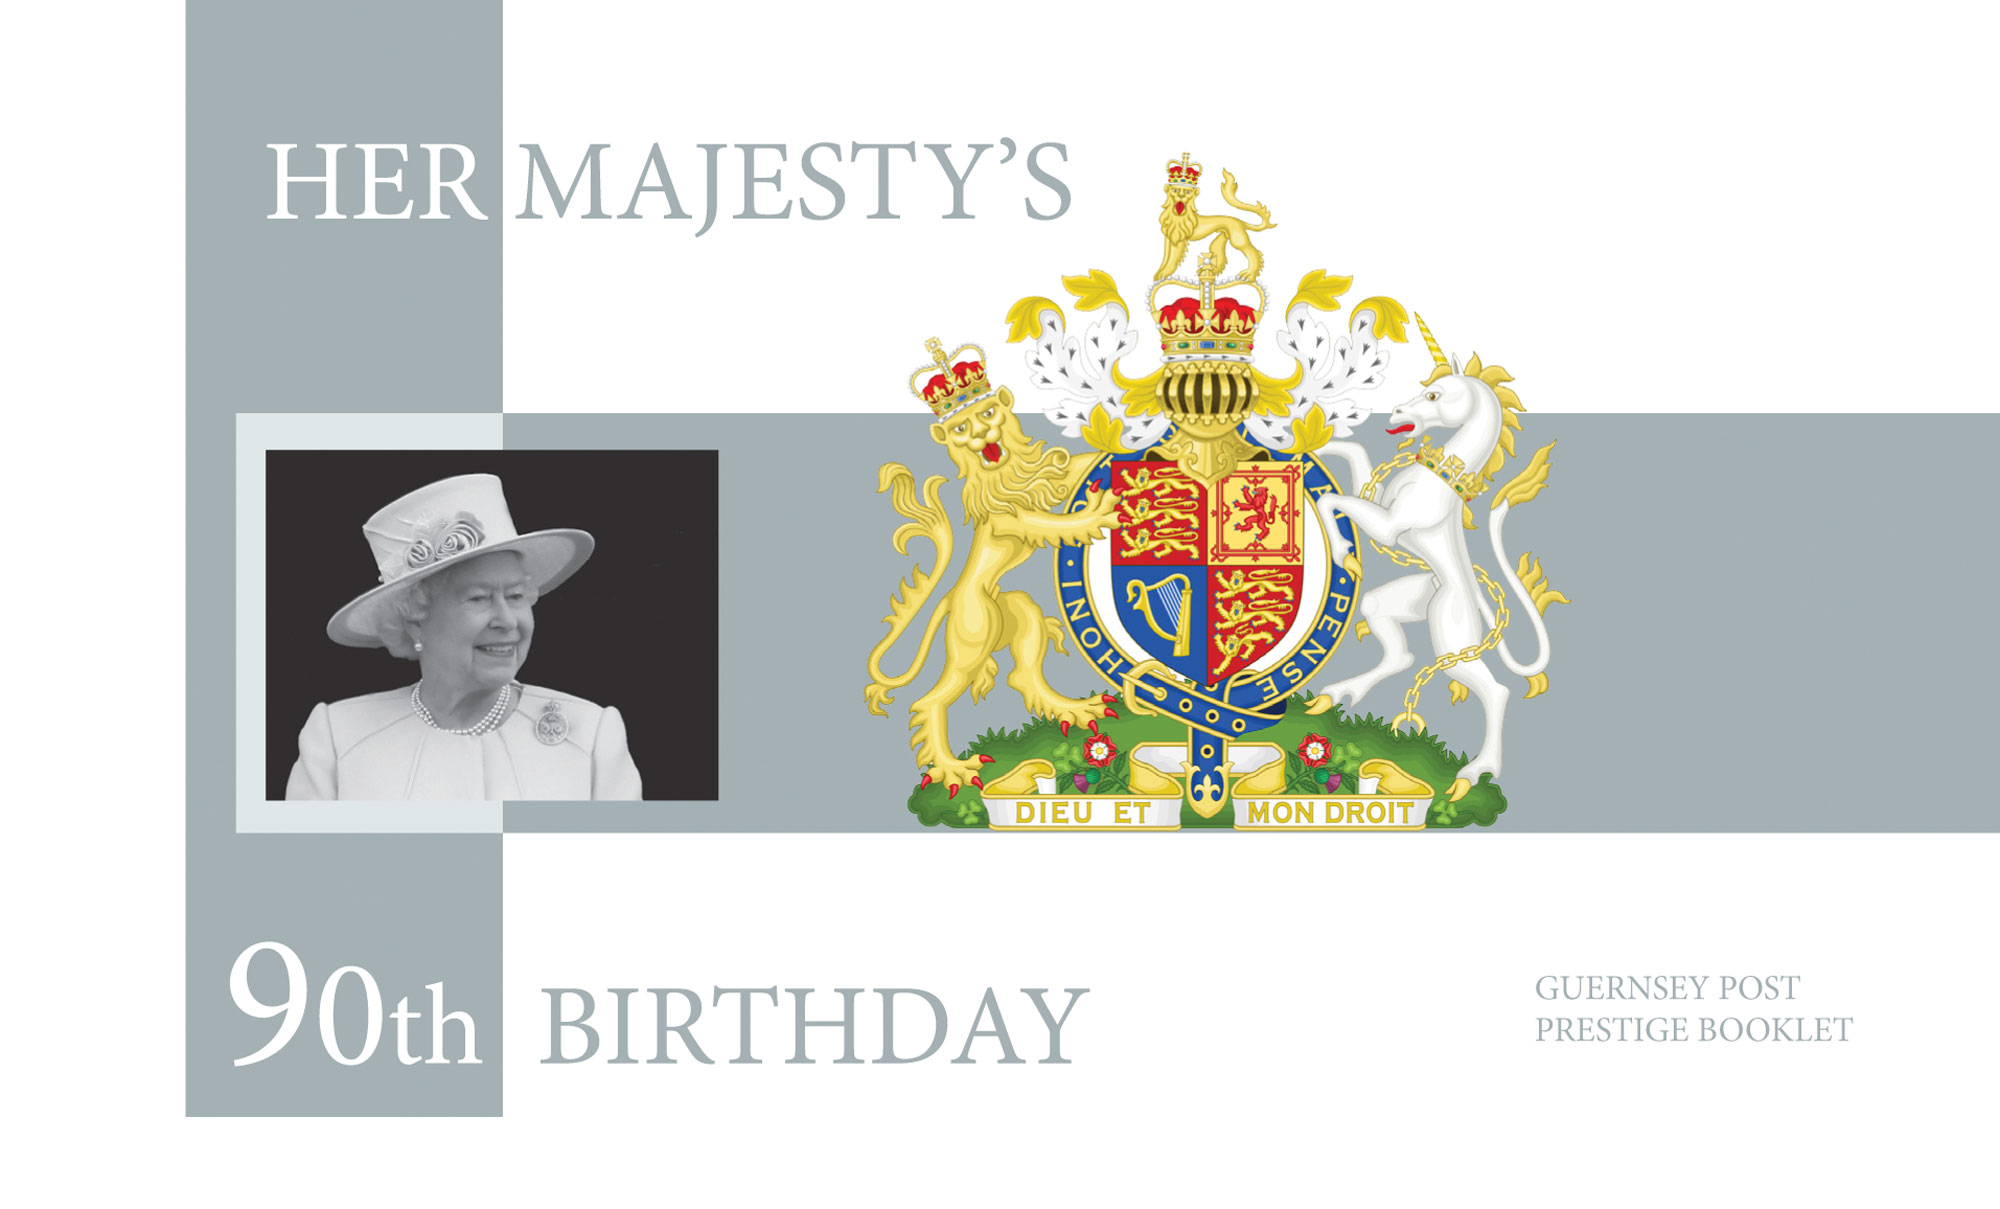 Her Majesty The Queens 90th Birthday Prestige Booklet